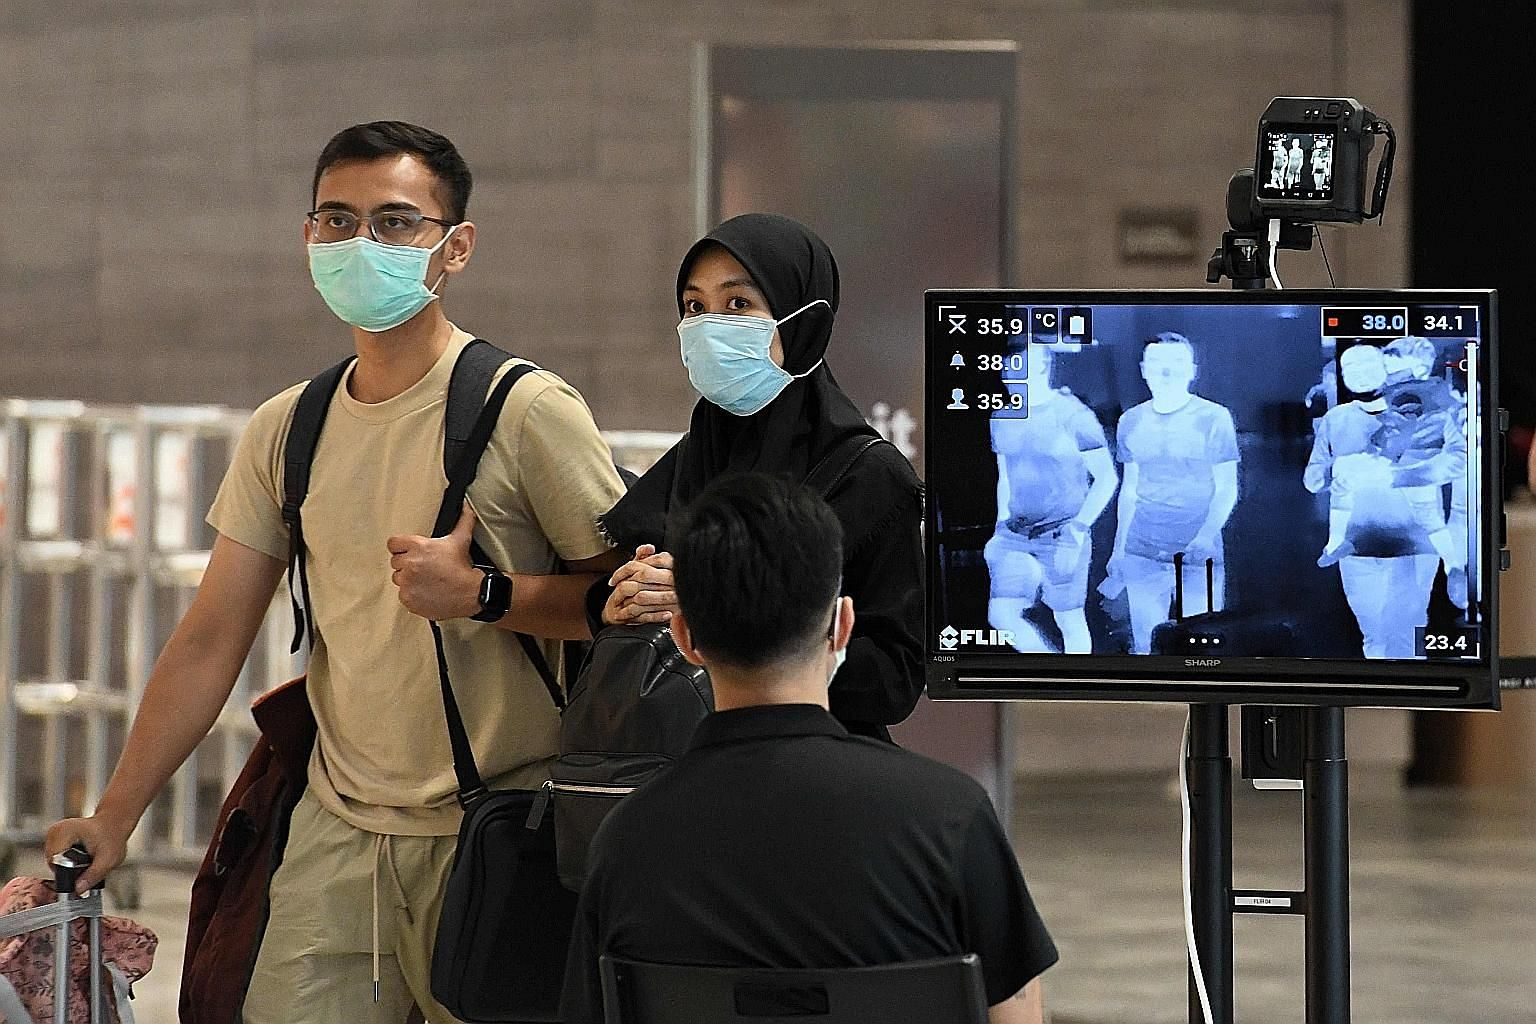 The Covid-19 outbreak will not be the last challenge that Singapore will face, said Deputy Prime Minister Heng Swee Keat. When the threat passes, Singapore will continue to face longer-term structural challenges such as an ageing population, technolo